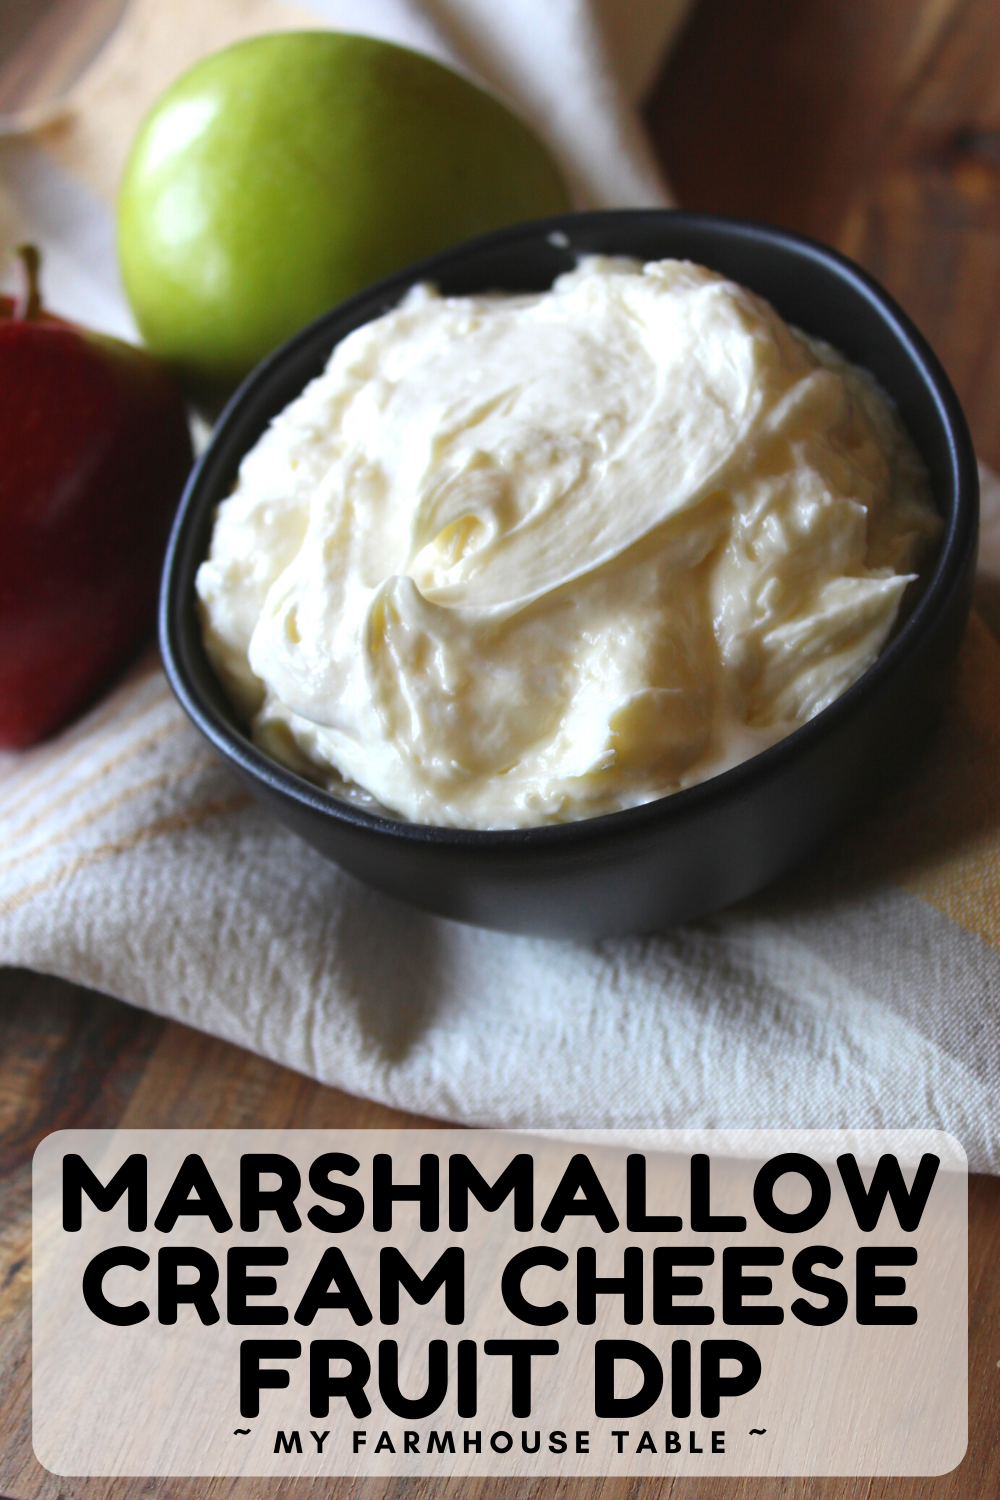 Marshmallow Cream Cheese Fruit Dip Easy Fruit Dip Recipe Made with Cream Cheese and Marshmallow Fluff Perfect for Fruit Trays Two Ingredients My Farmhouse Table